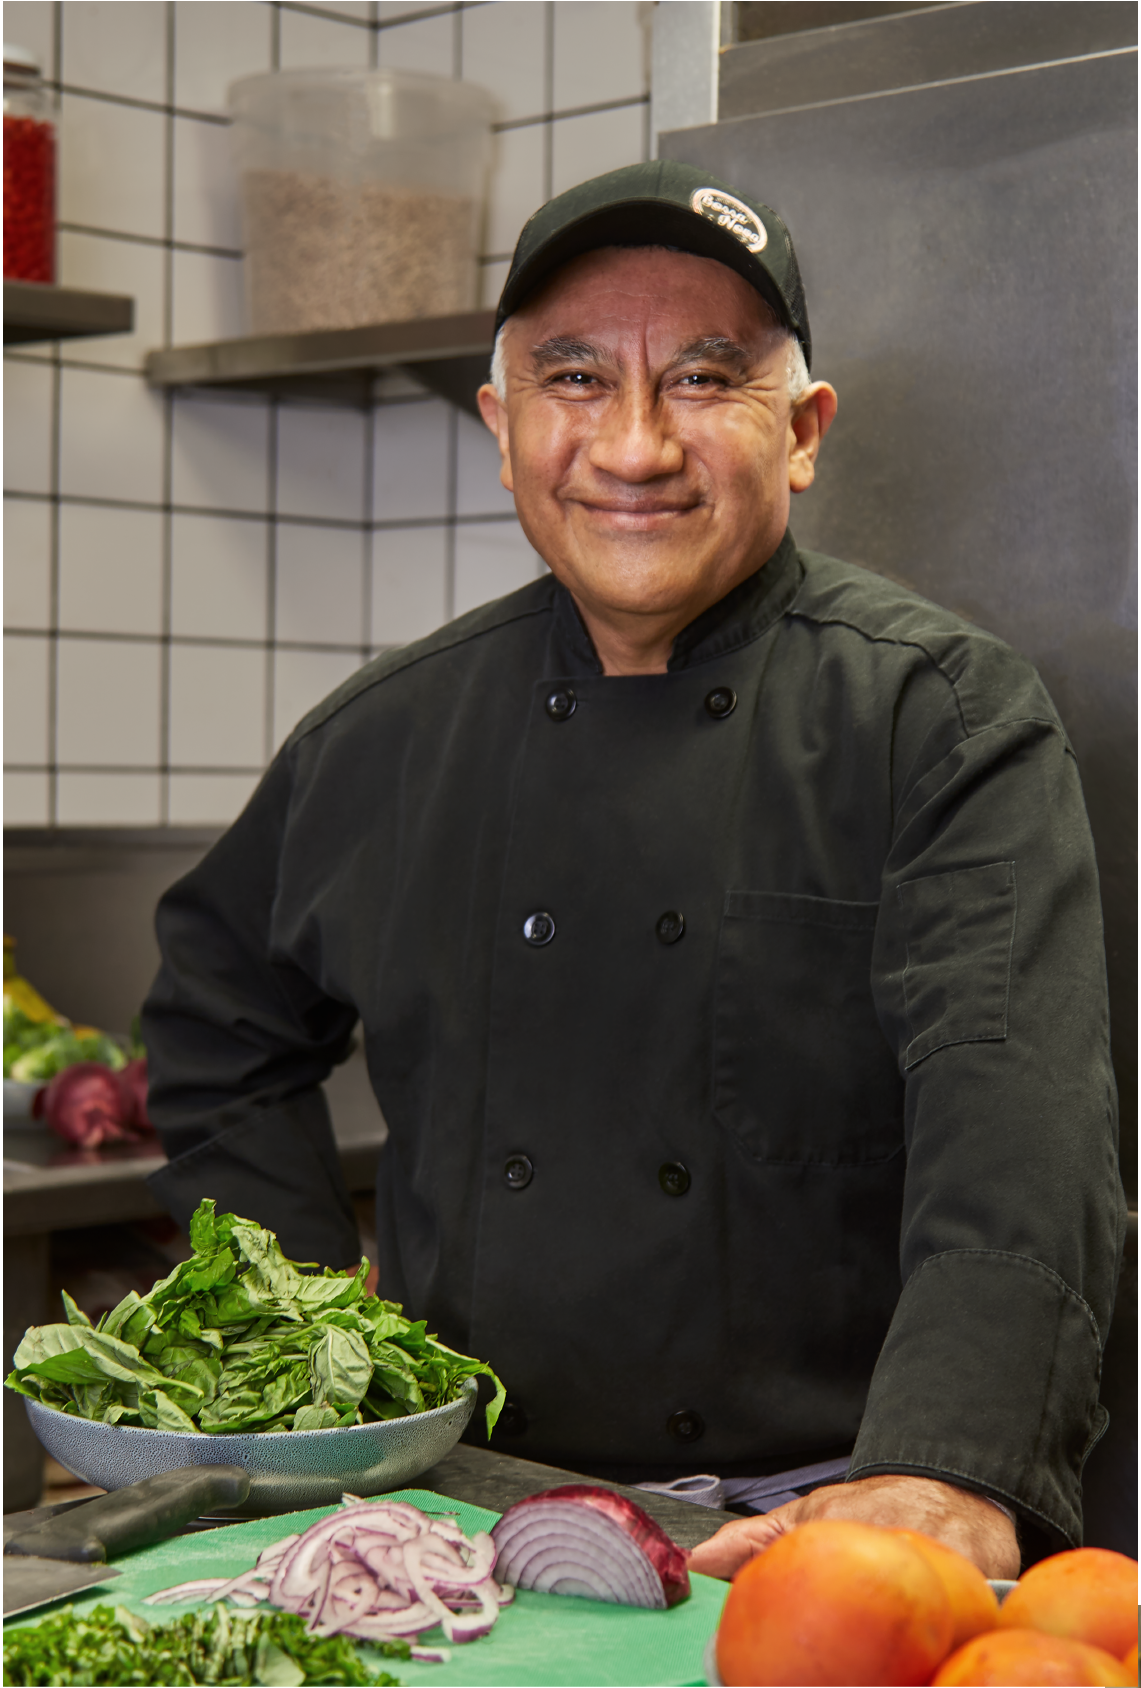 Chef Willy West Los Angeles